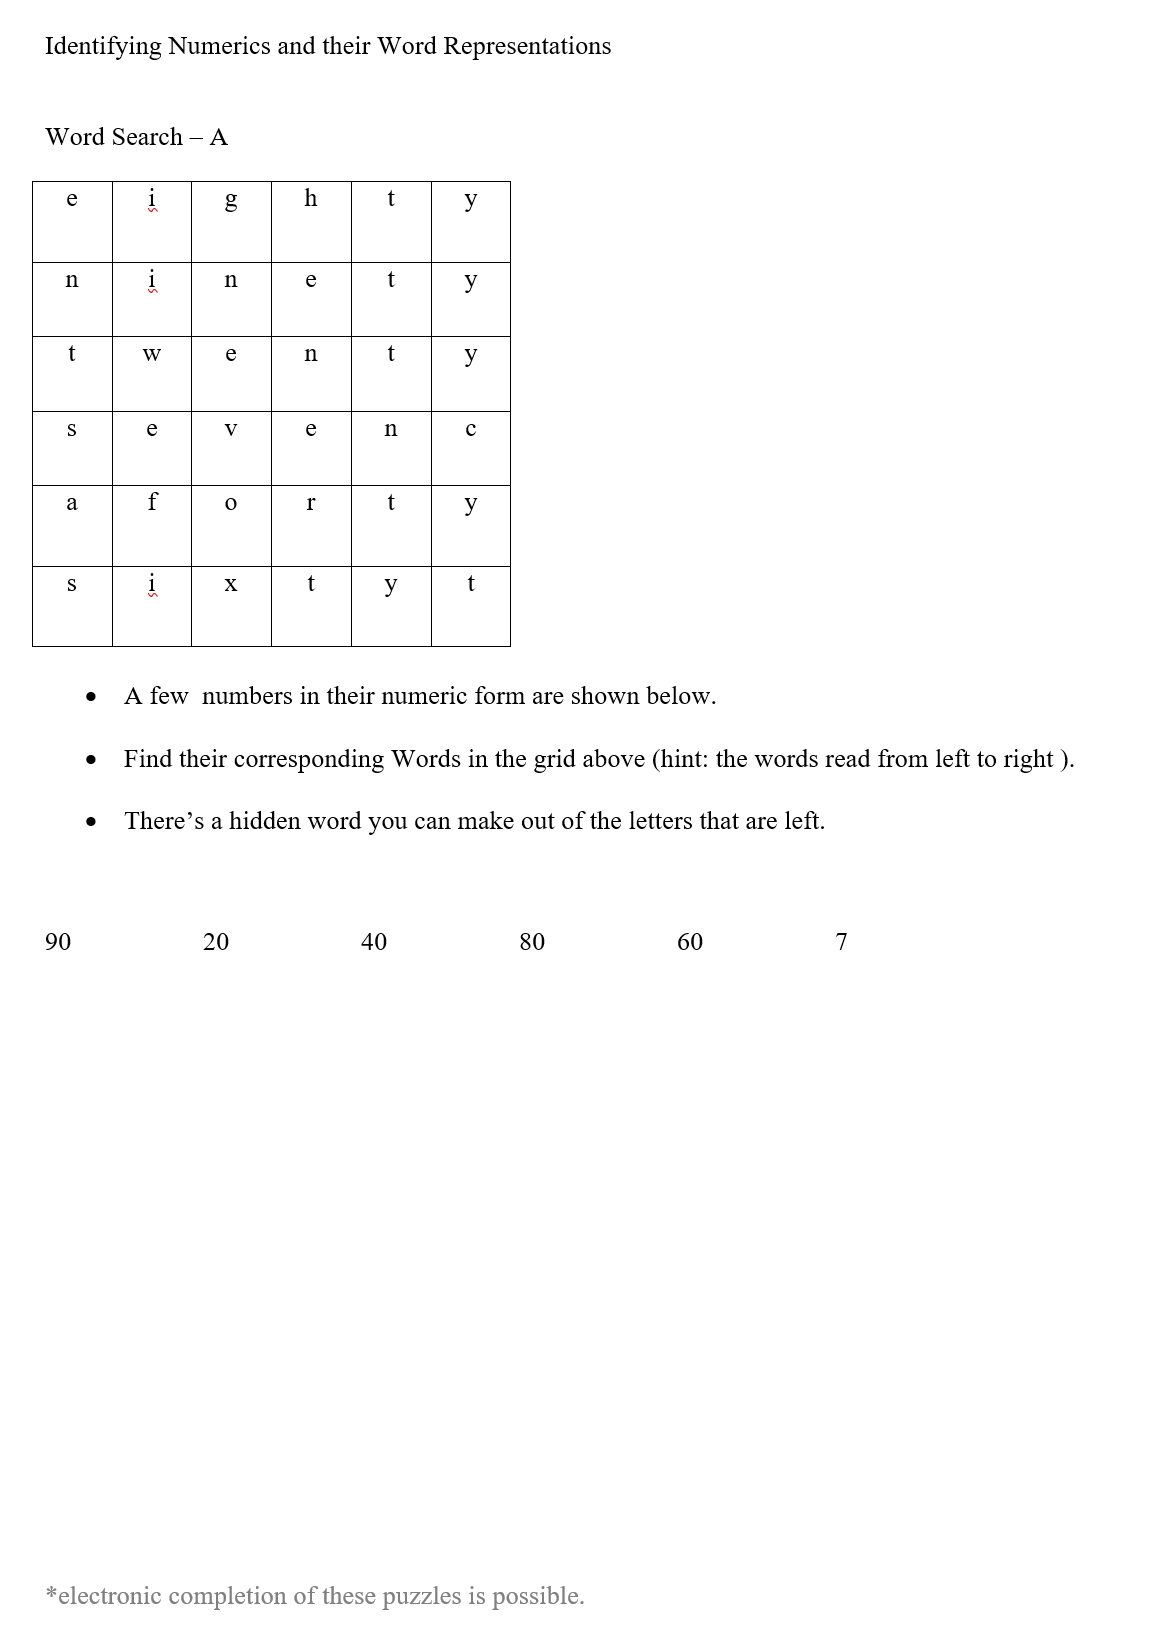 word searches re_ finding number word representations pg 1 of 4